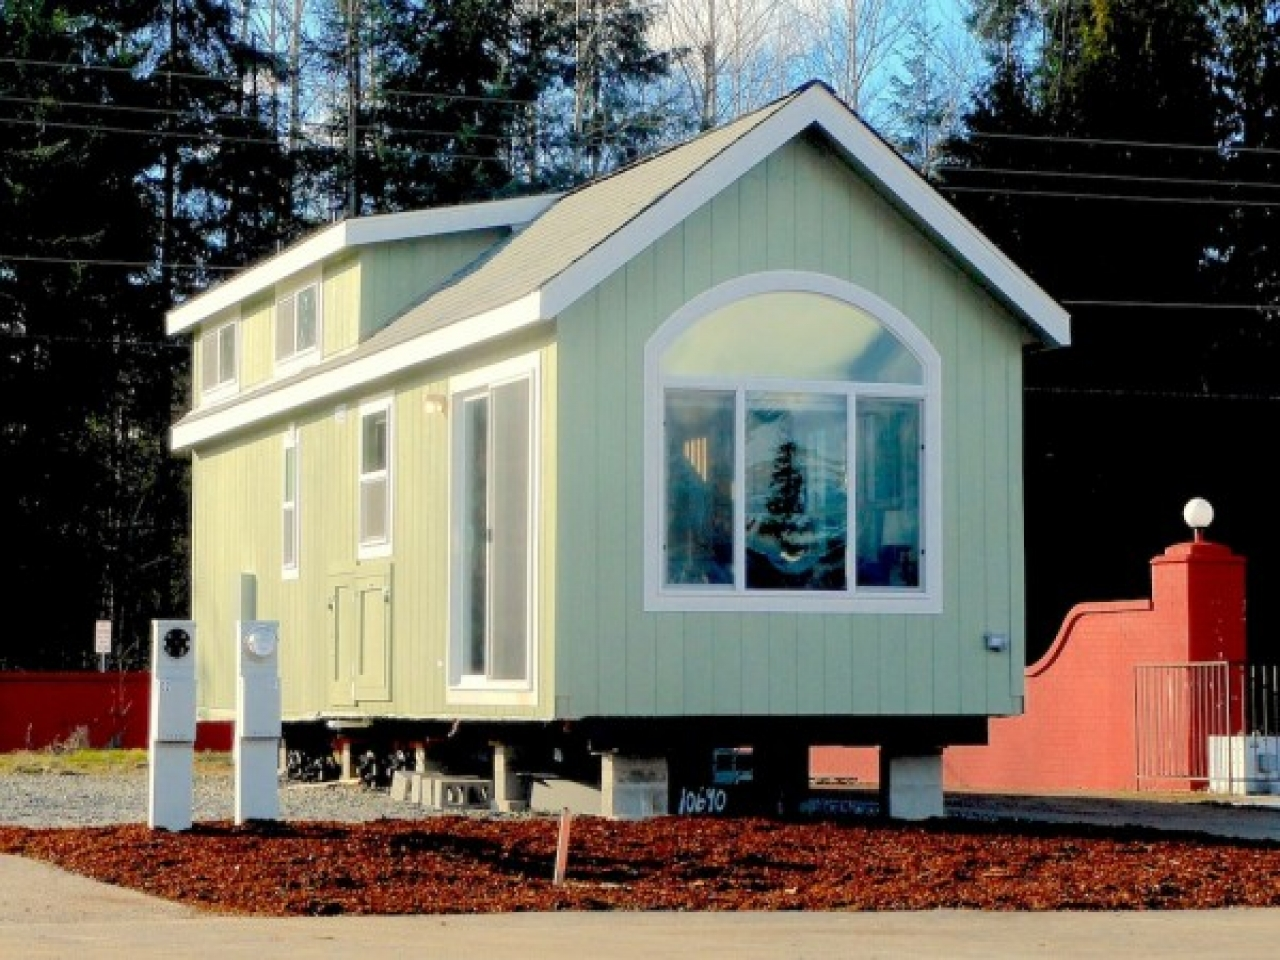 Park model homes 2 bedrooms park model tiny house for 2 bedroom cabins to build